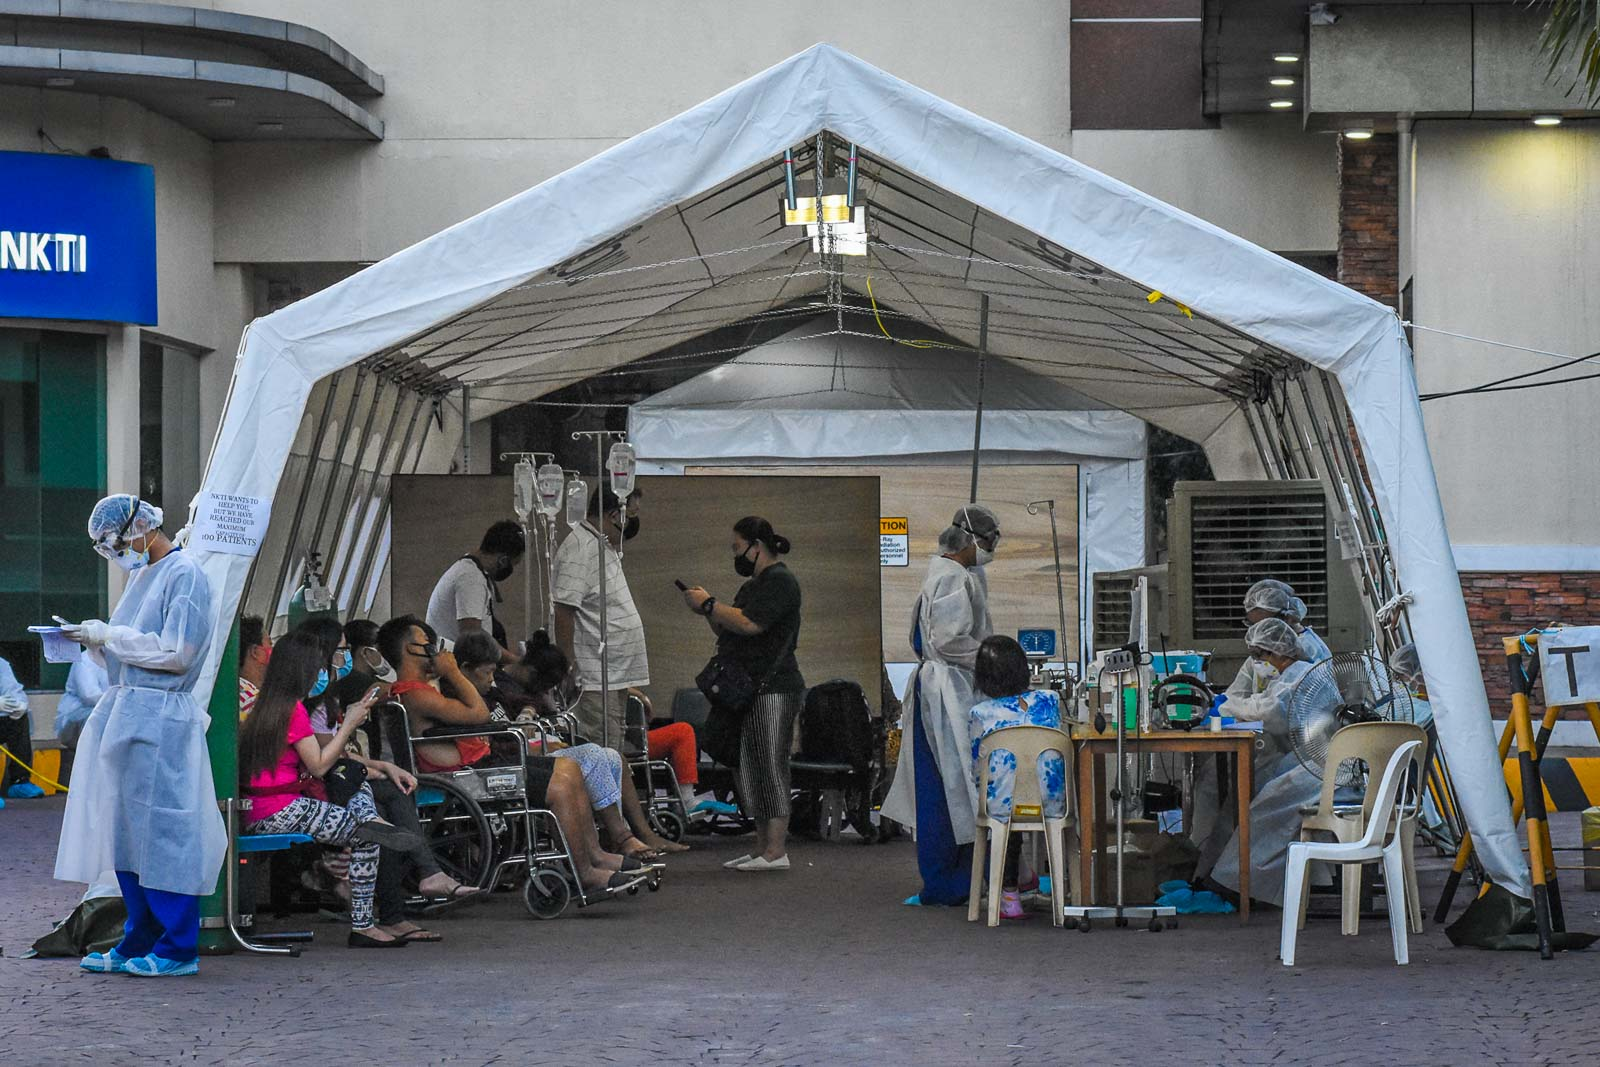 FRONT LINES. The National Kidney and Transplant Institute in Quezon City sets up a triage facility at the hospital's compound to evaluate and categorize patients on March 29, 2020. File photo by Angie de Silva/Rappler